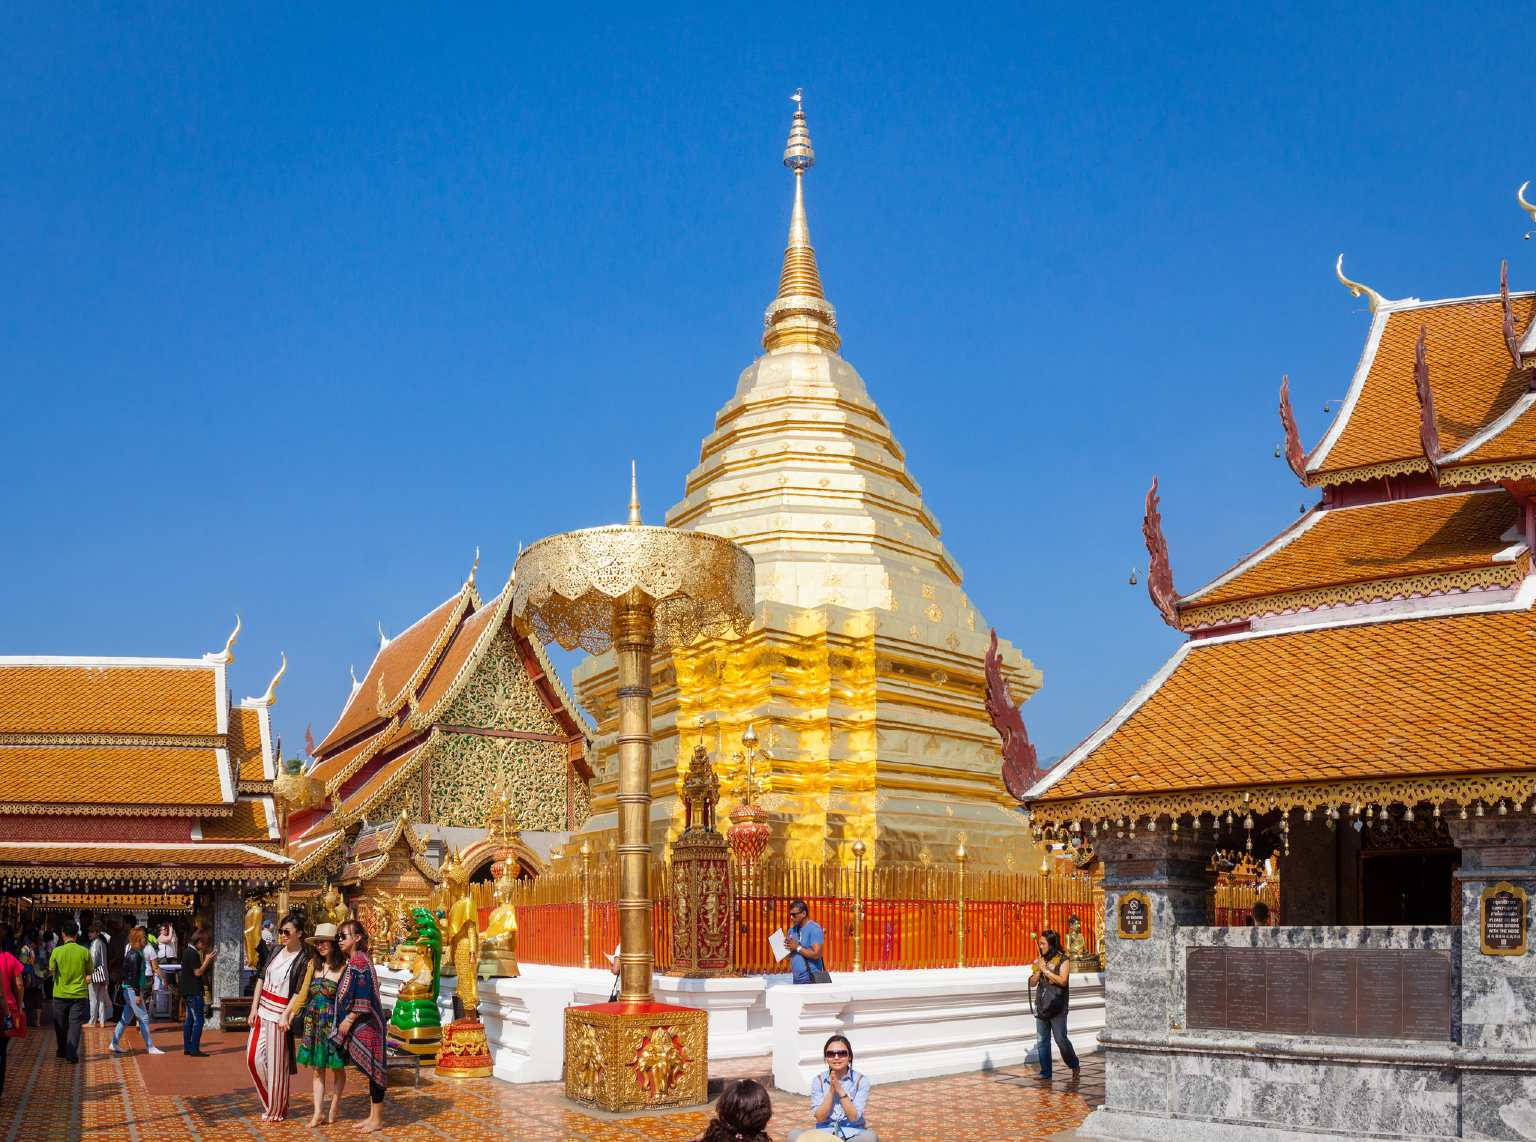 The golden temple of the Wat Phrathat Doi Suthep in Chiang Mai with a clear blue sky in the background.